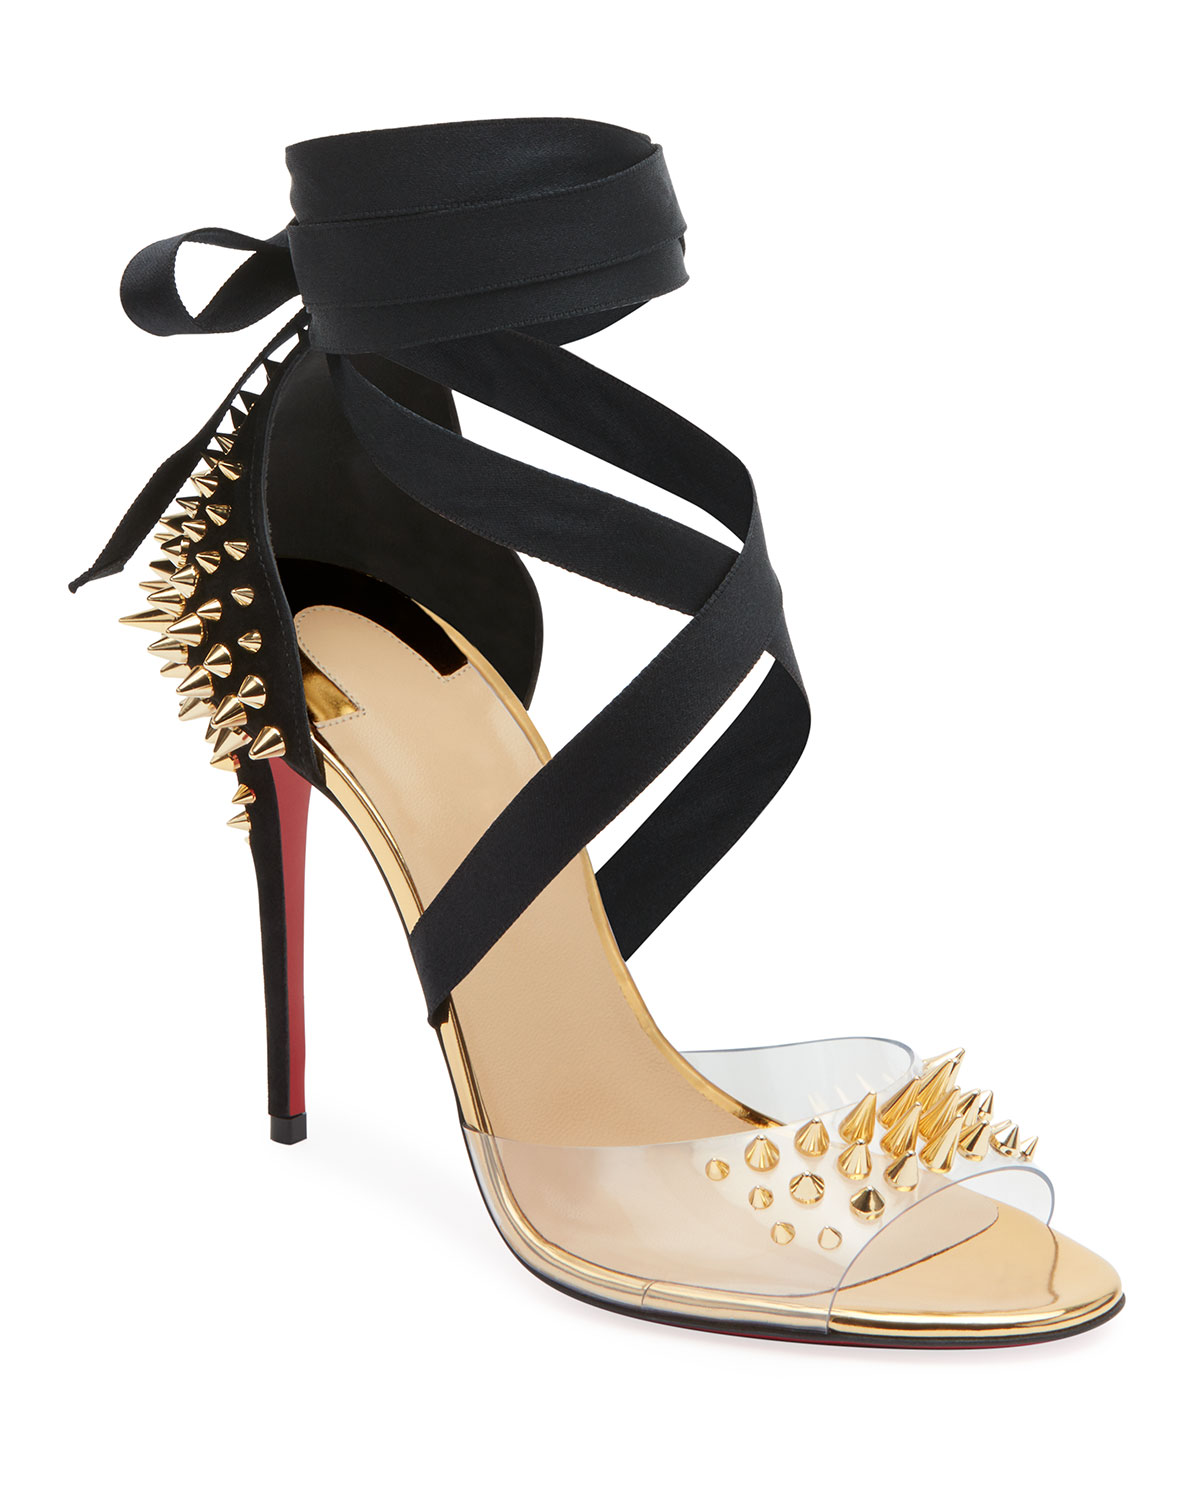 grossiste 056f7 9aa81 Barbarissima Red Sole Sandals